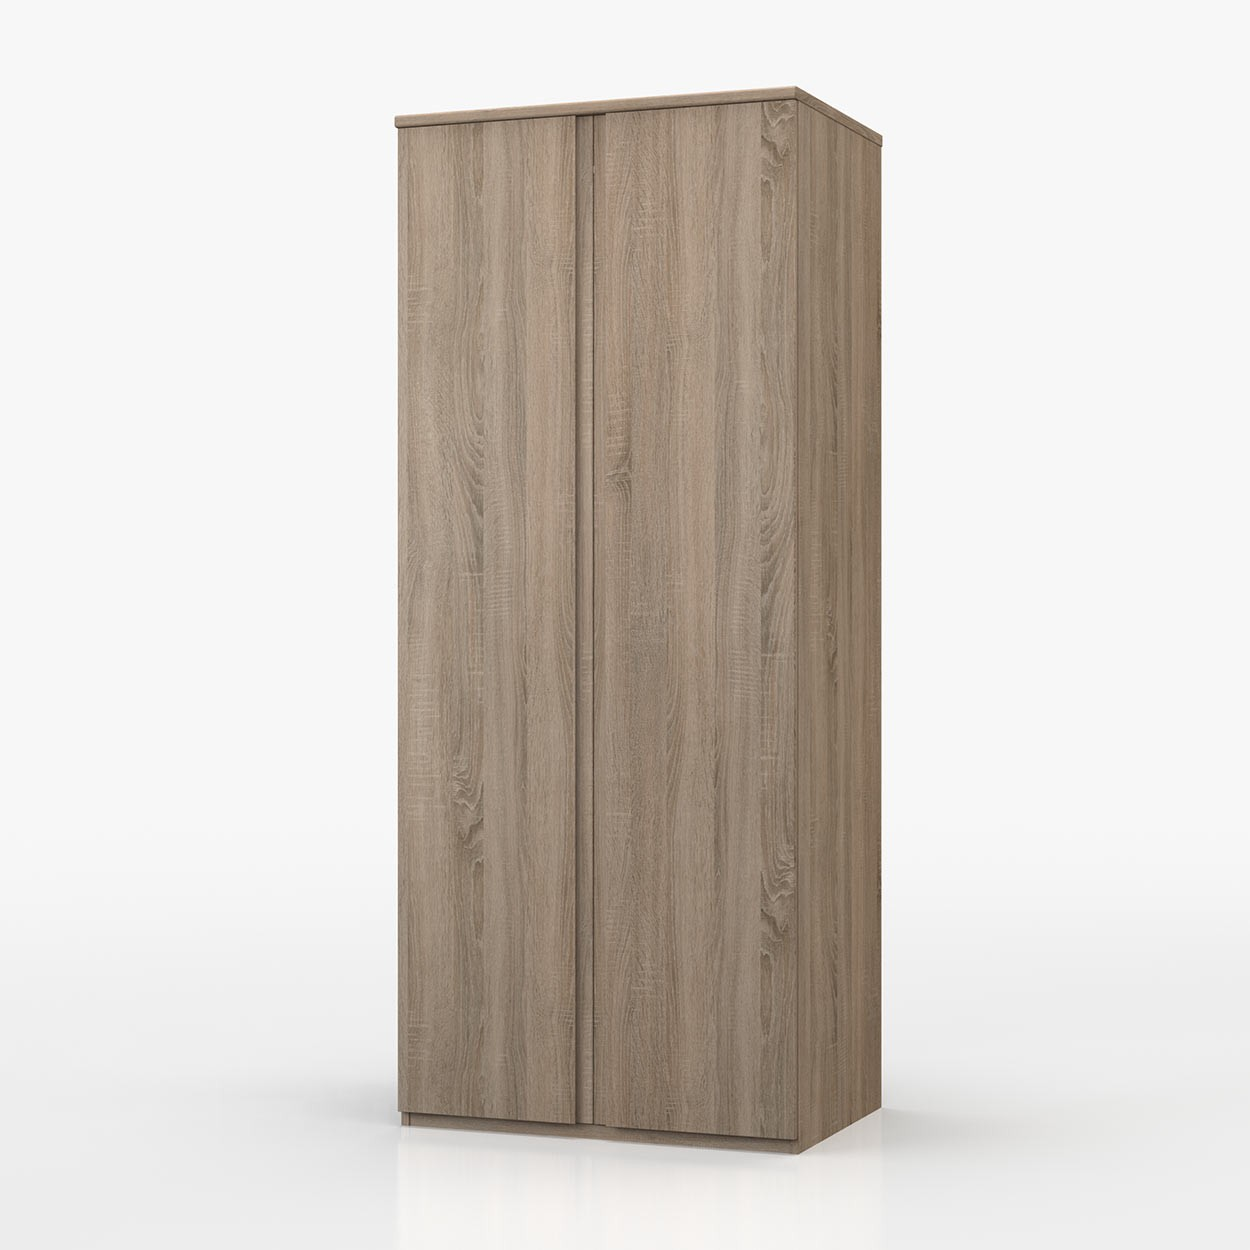 Avenue Truffle Oak 2 Door Wardrobe